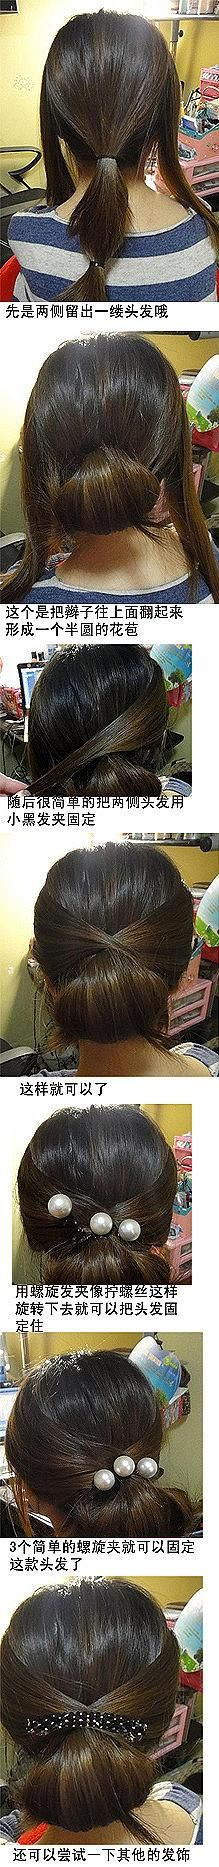 easy elegant bun for short hair; would work for longer hair if put in a chignon instead Up Hairstyles, Pretty Hairstyles, Hairstyle Ideas, Hair Dos, Your Hair, Corte Y Color, Tips Belleza, Great Hair, Awesome Hair